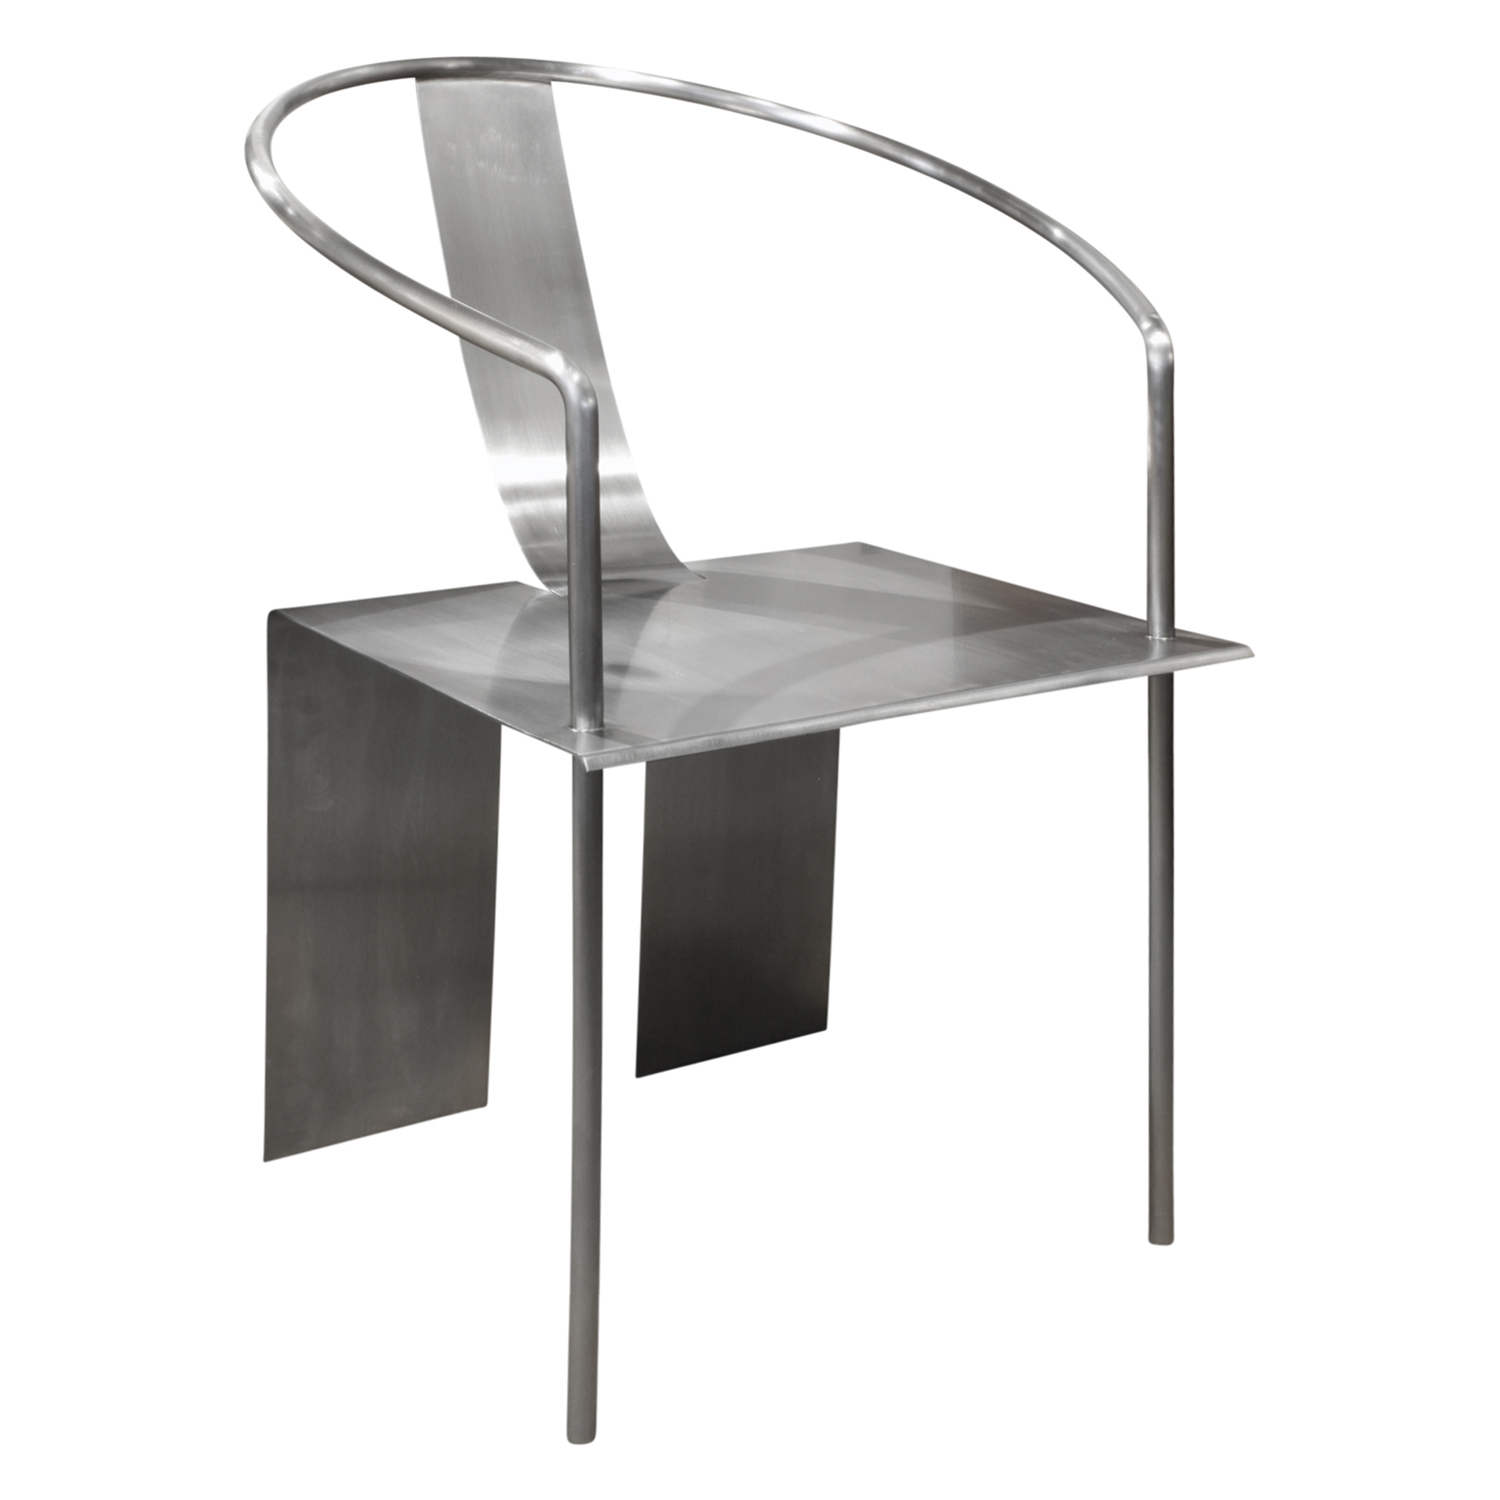 Shao Fan 300 steel chair sculpture109 agl.jpg